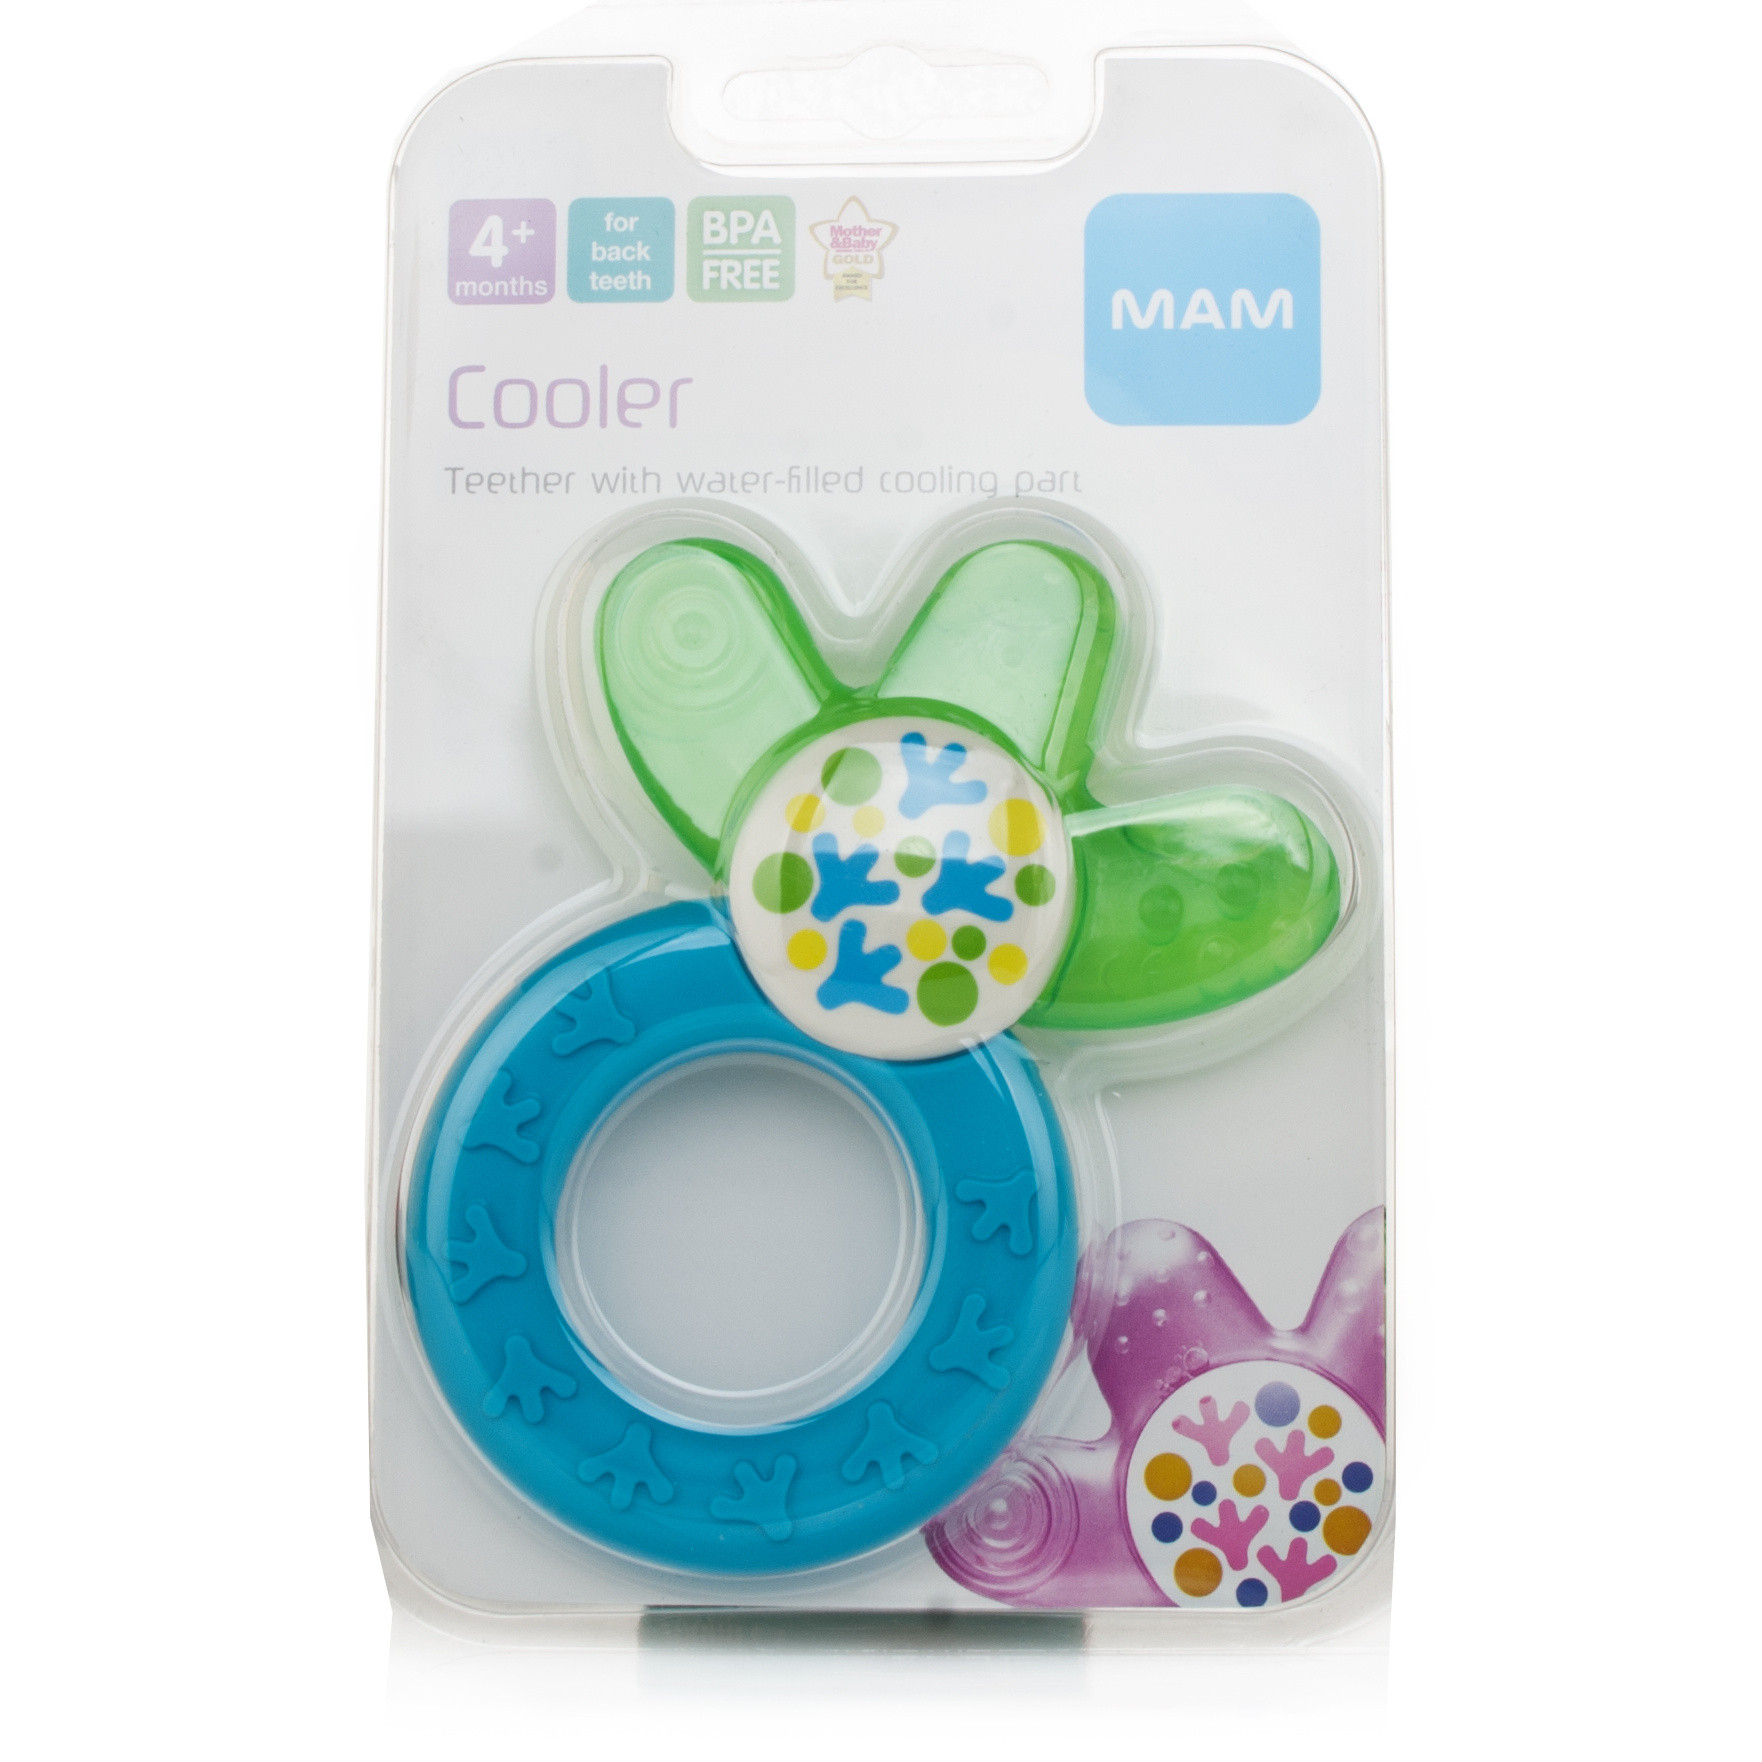 MAM Cooler Teether Boys